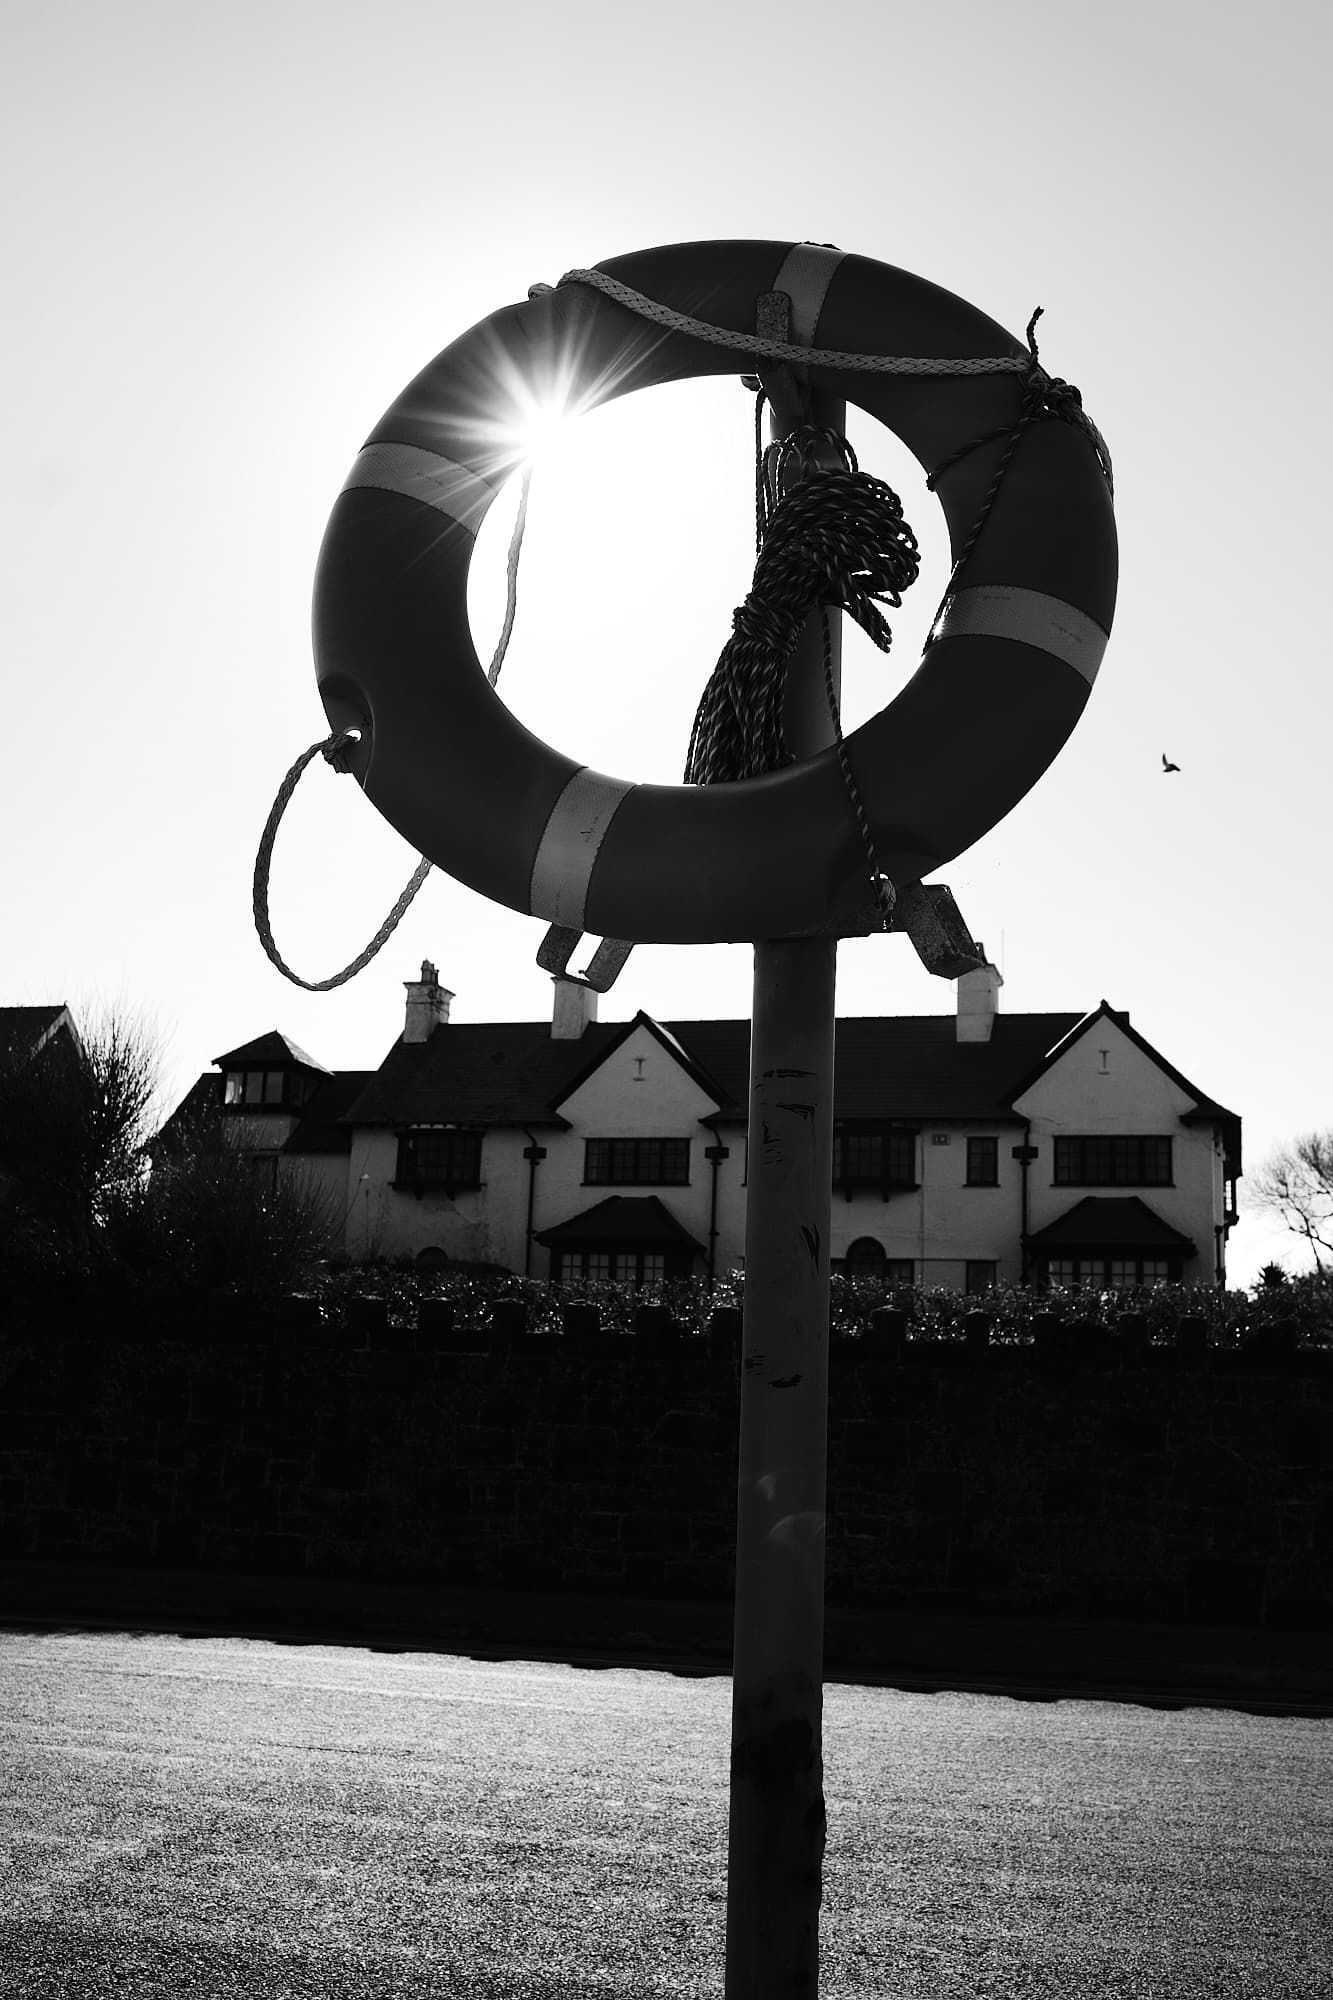 life buoy in front of the sun